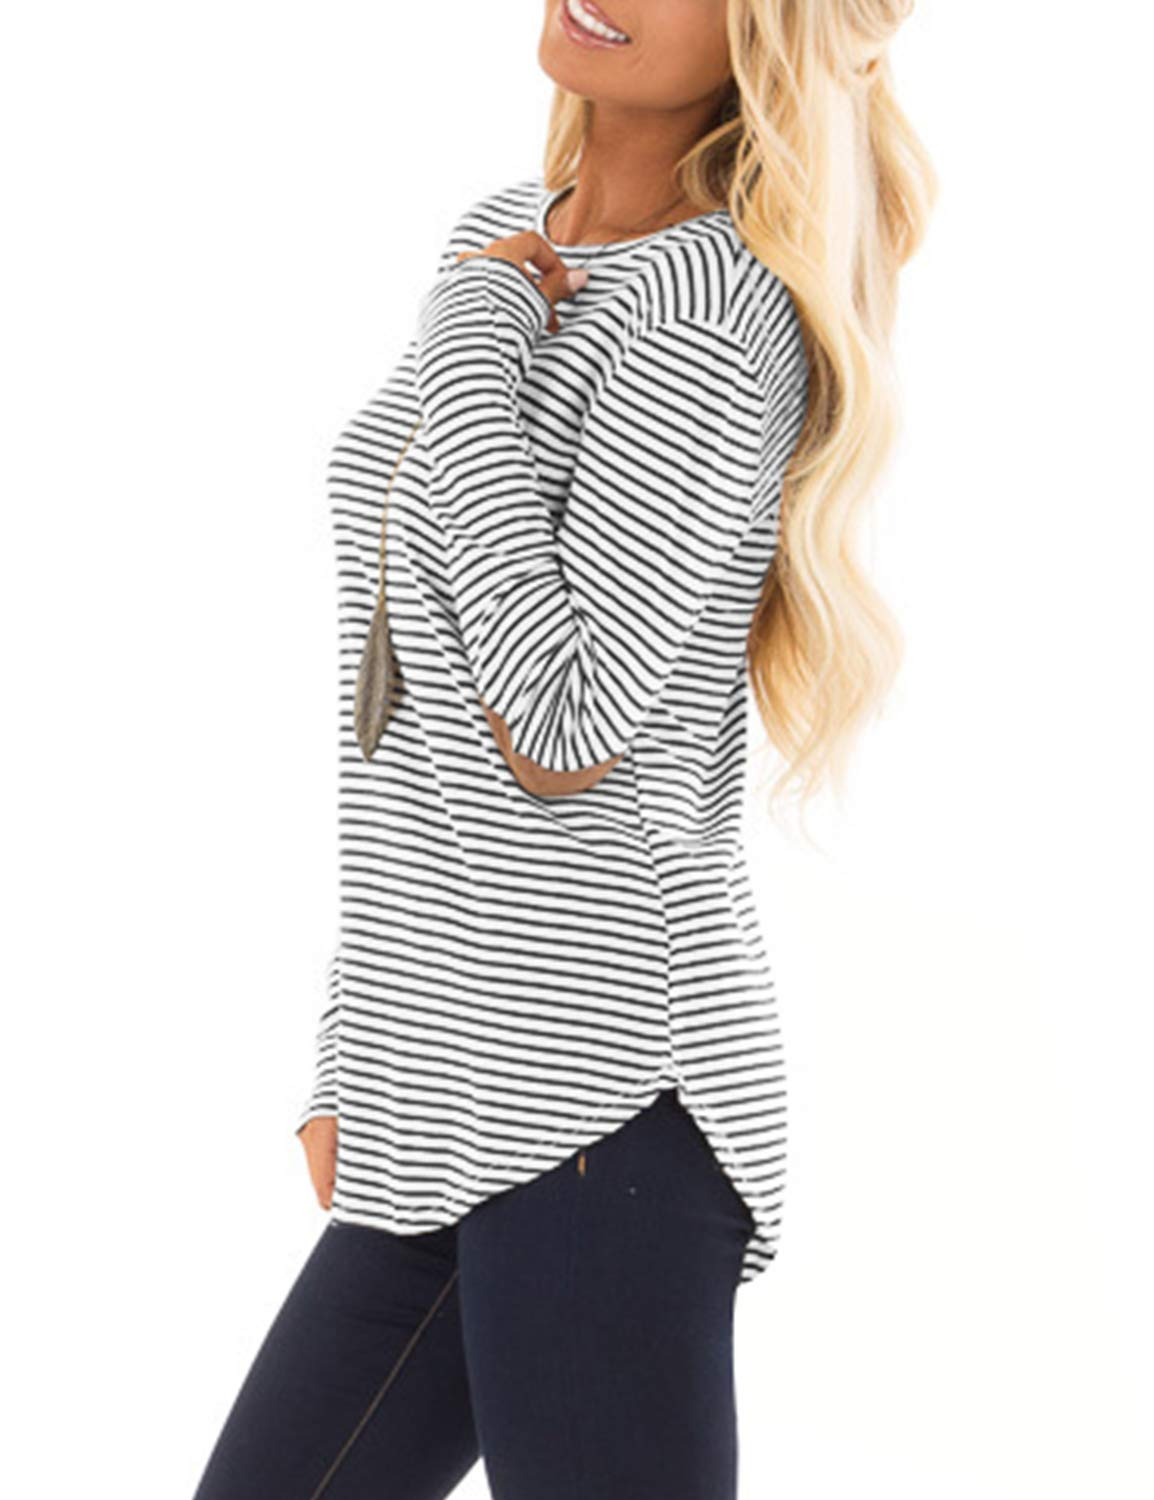 Blooming Jelly Womens Long Sleeve T Shirts Striped Crew Neck Elbow Patch Casual Tee Tops(S,Striped)